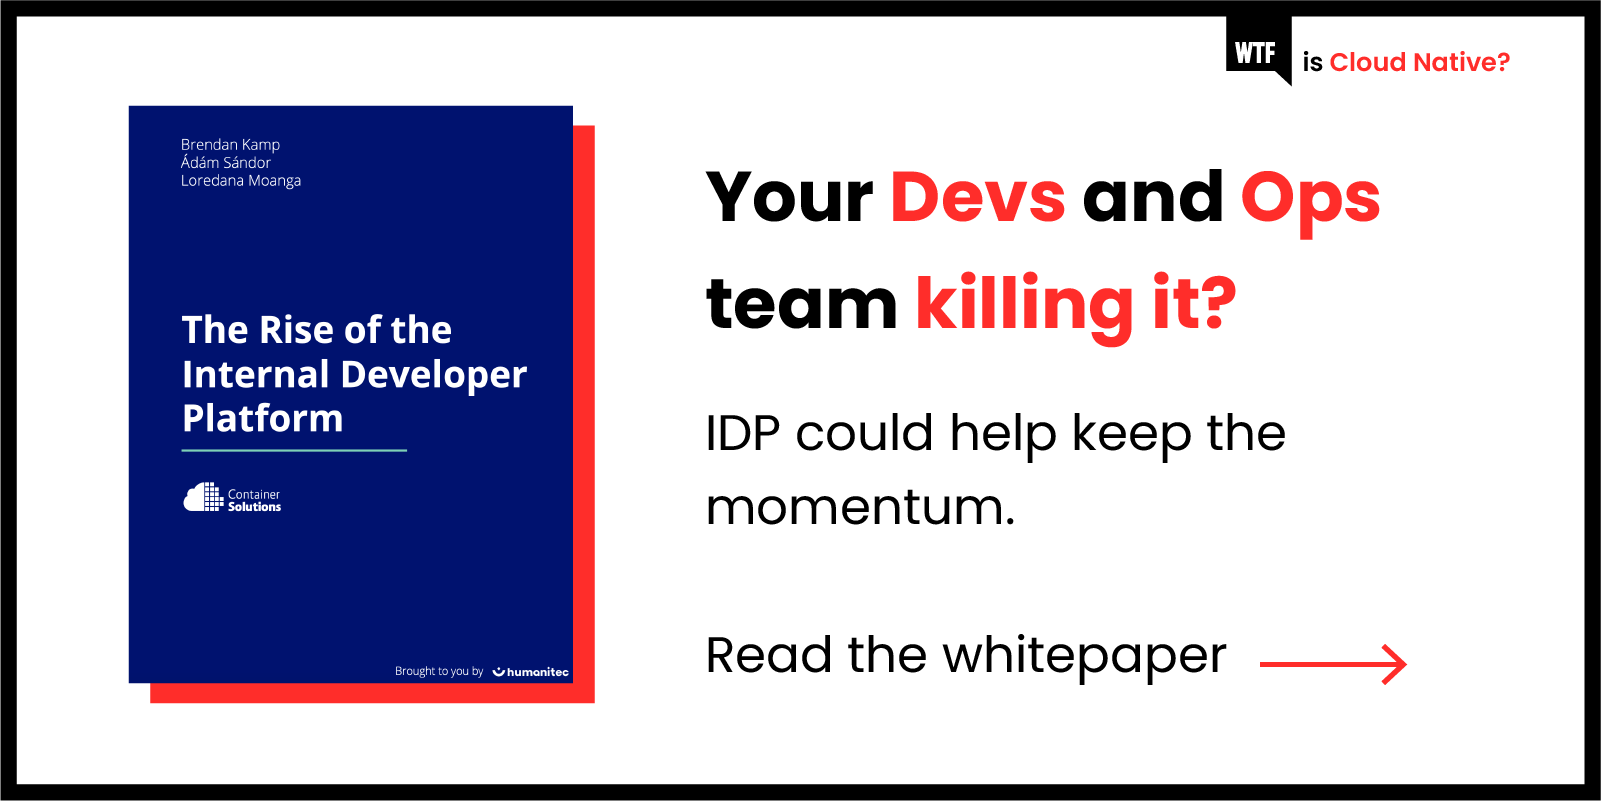 Your Devs and Ops team killing it? IDP could help keep the momentum. Read the whitepaper ->